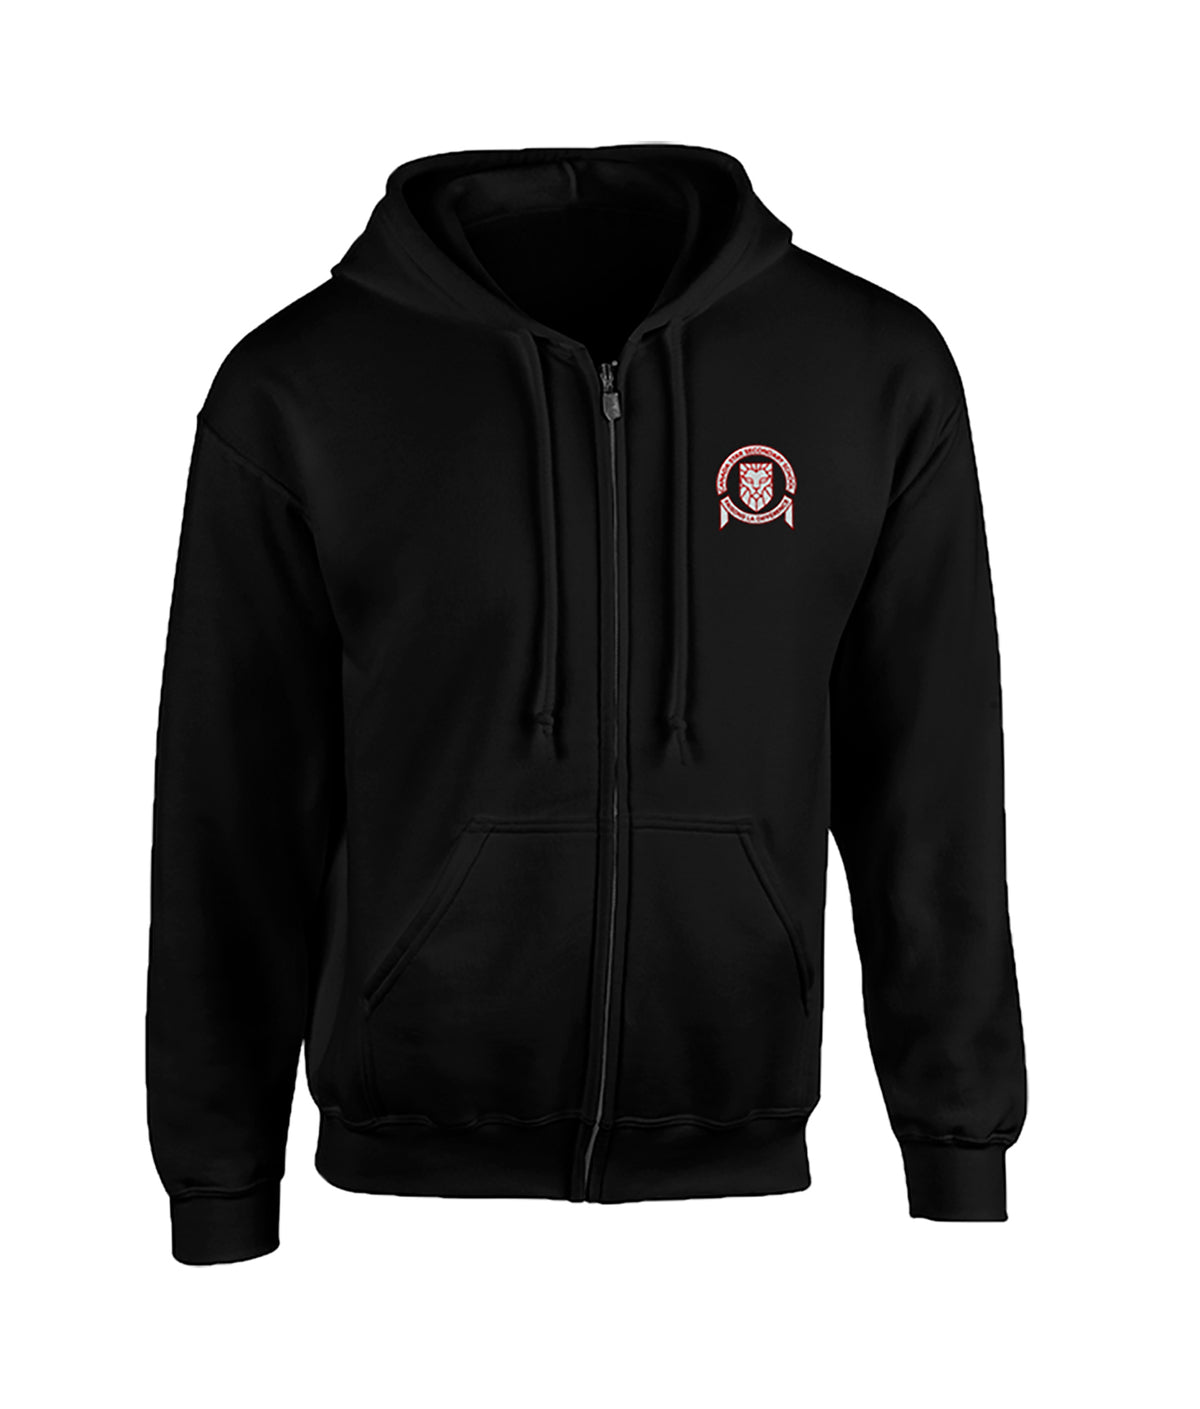 CANADA STAR ZIP HOODIE, YOUTH